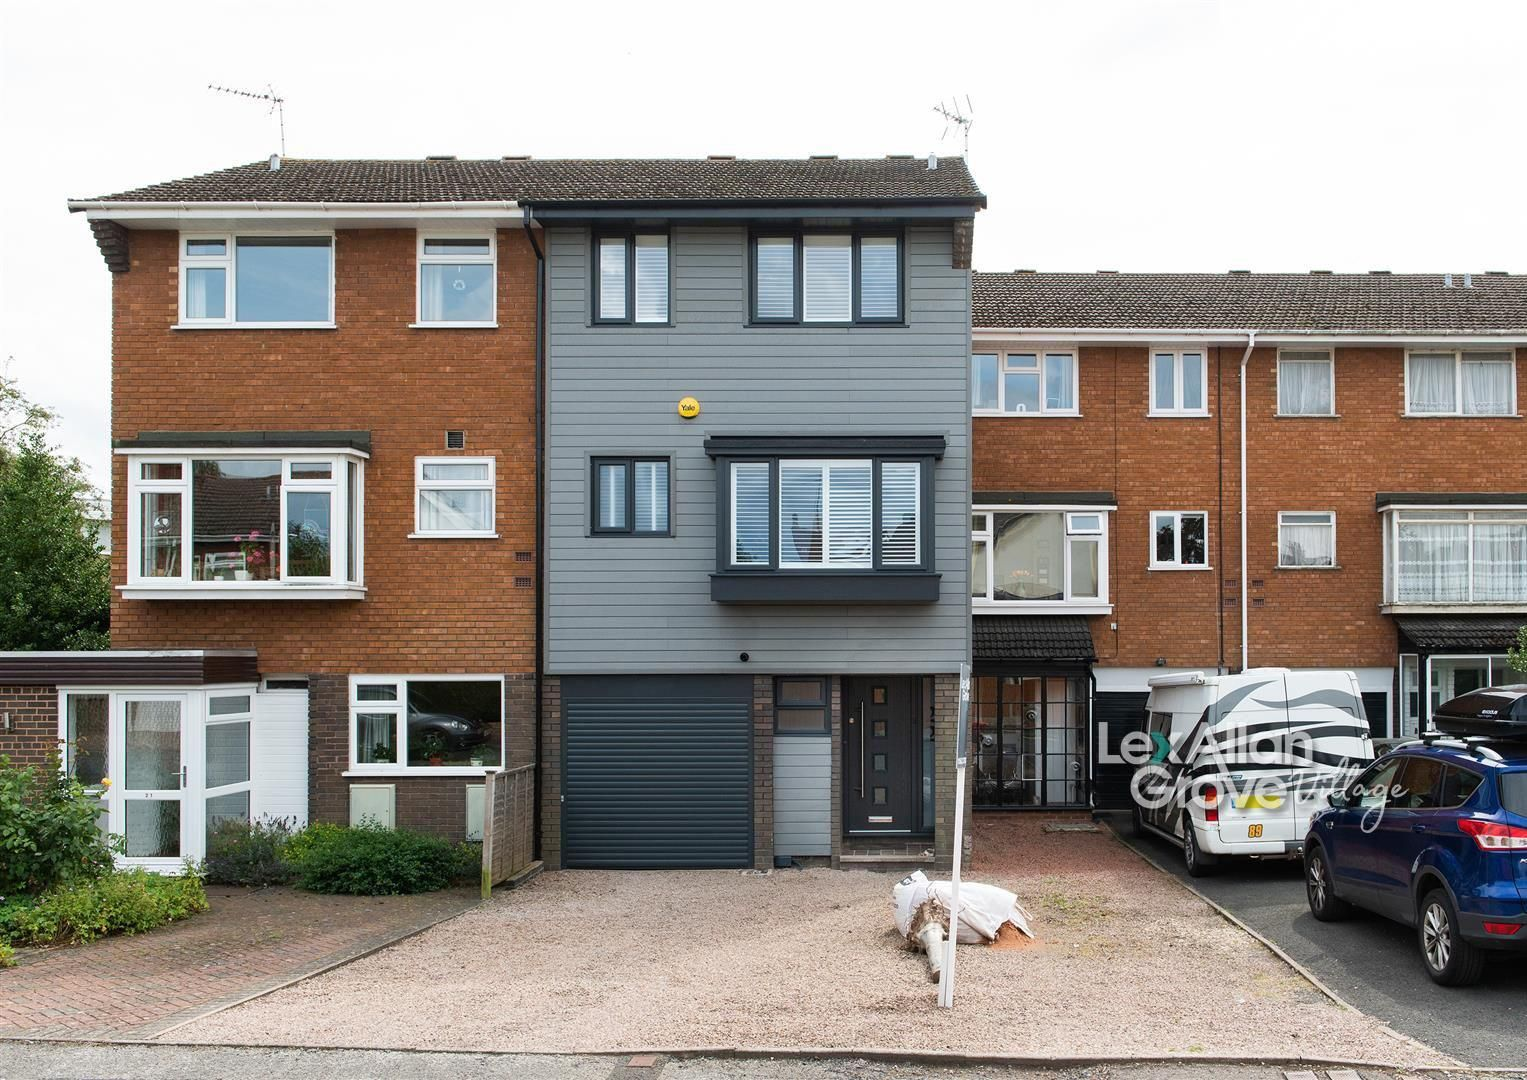 3 bed town-house for sale in Hagley 1